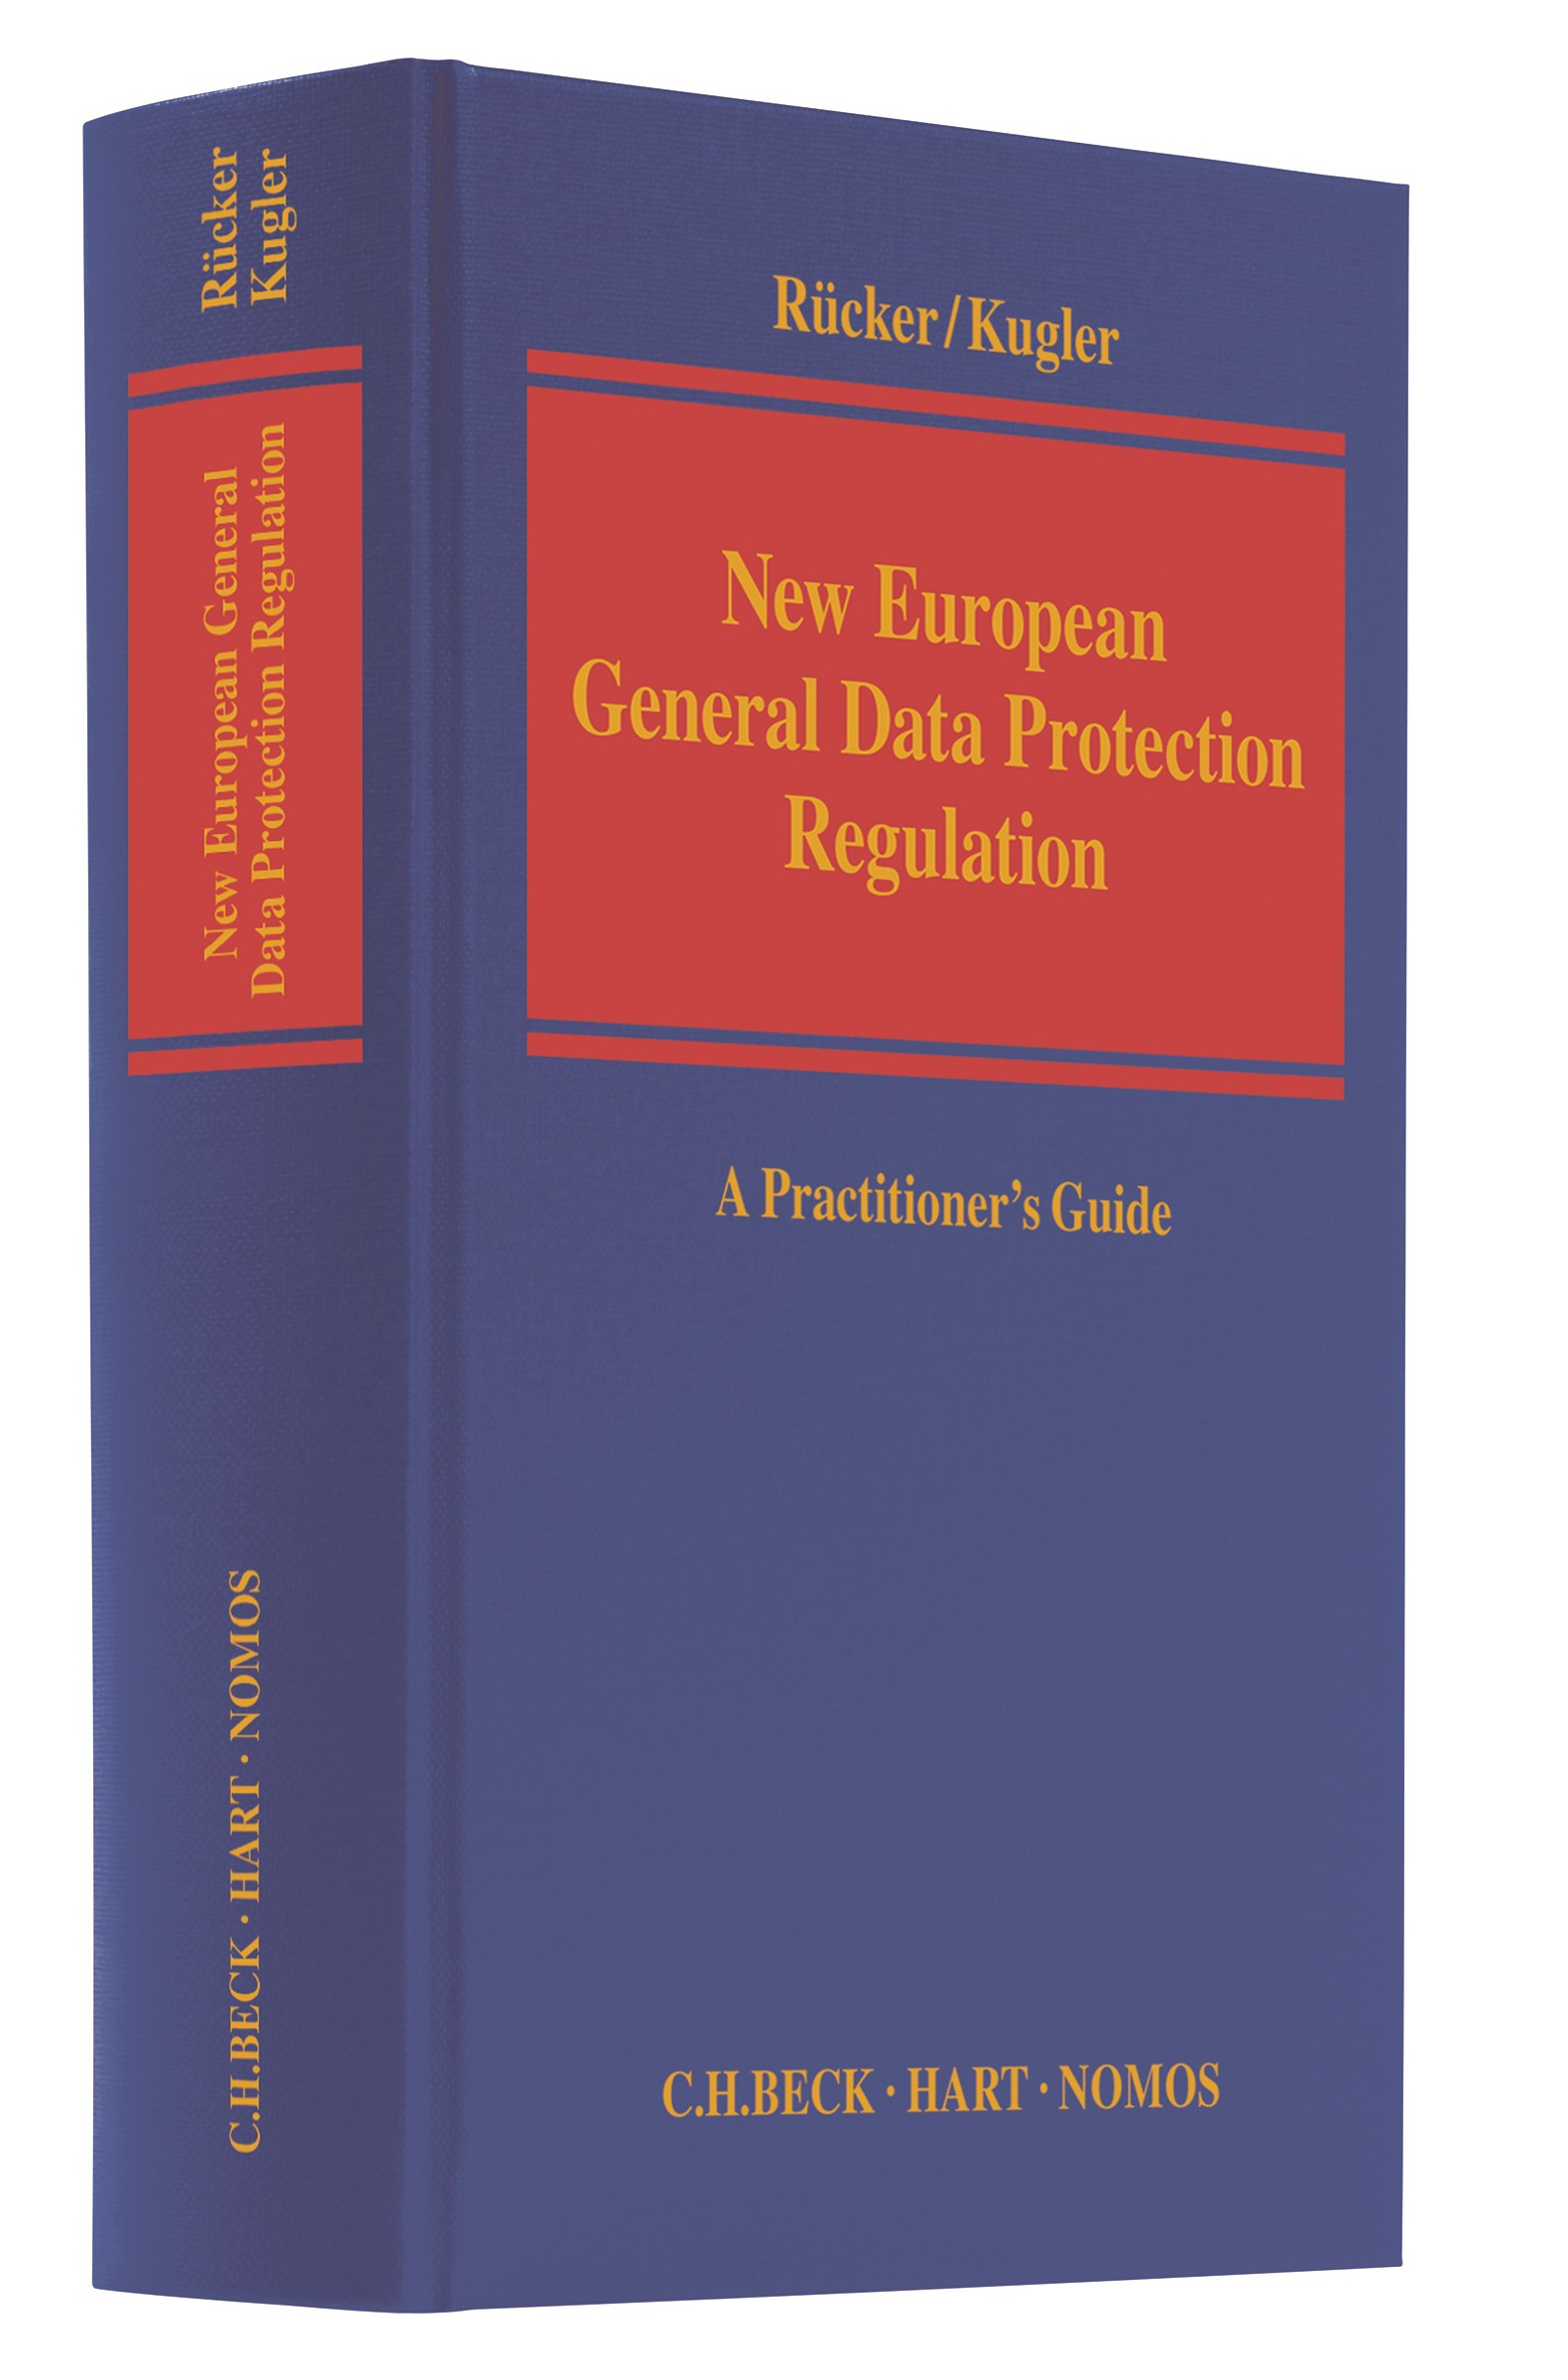 New European General Data Protection Regulation | Rücker / Kugler, 2017 | Buch (Cover)